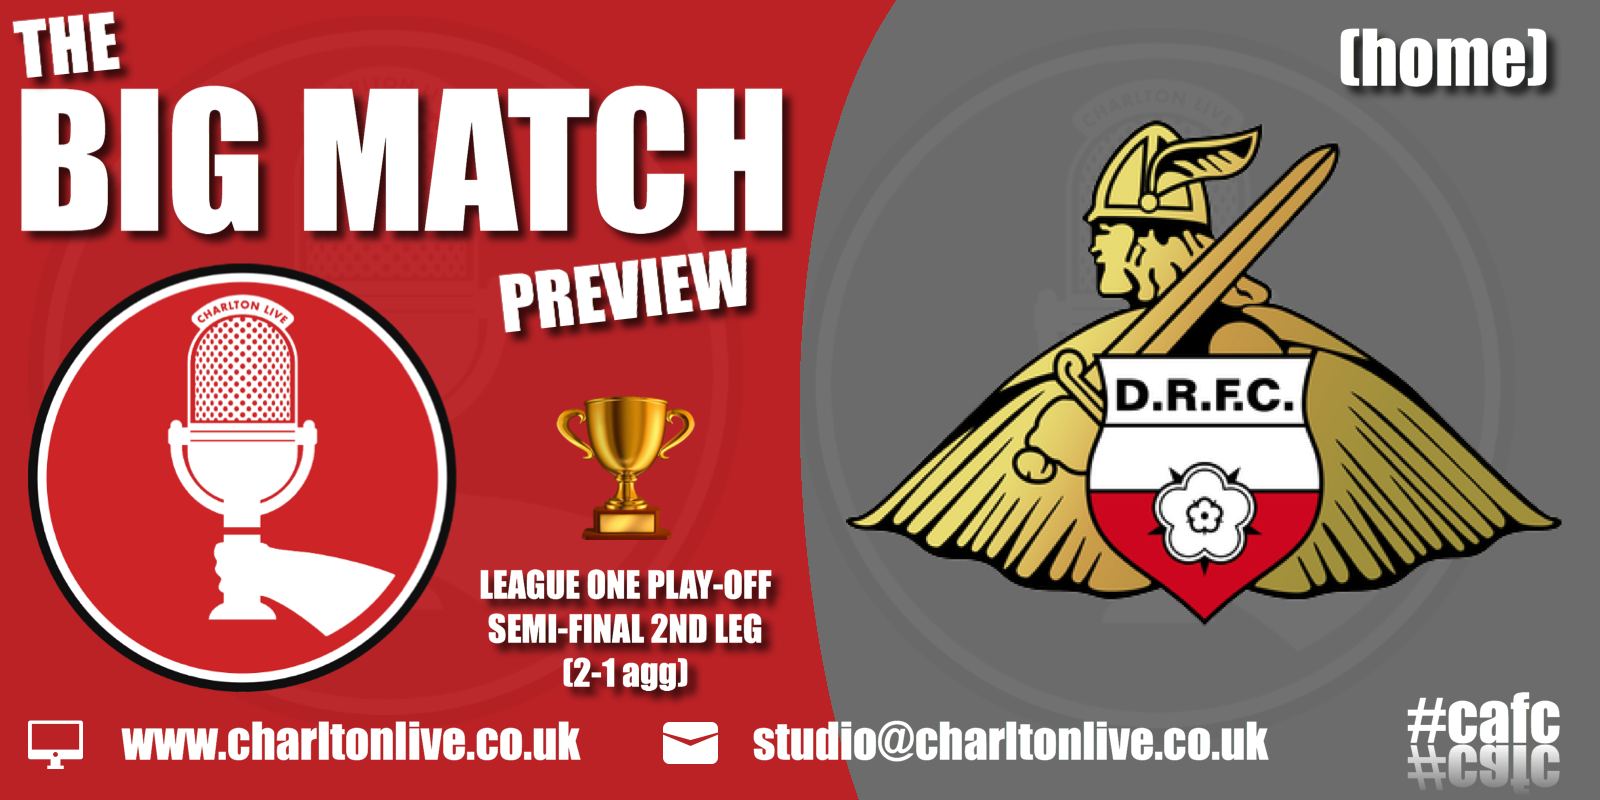 Join Louis Mendez, Tom Wallin and Nathan Muller as they look back at the 1st leg and ahead to the 2nd leg of the play-off […]